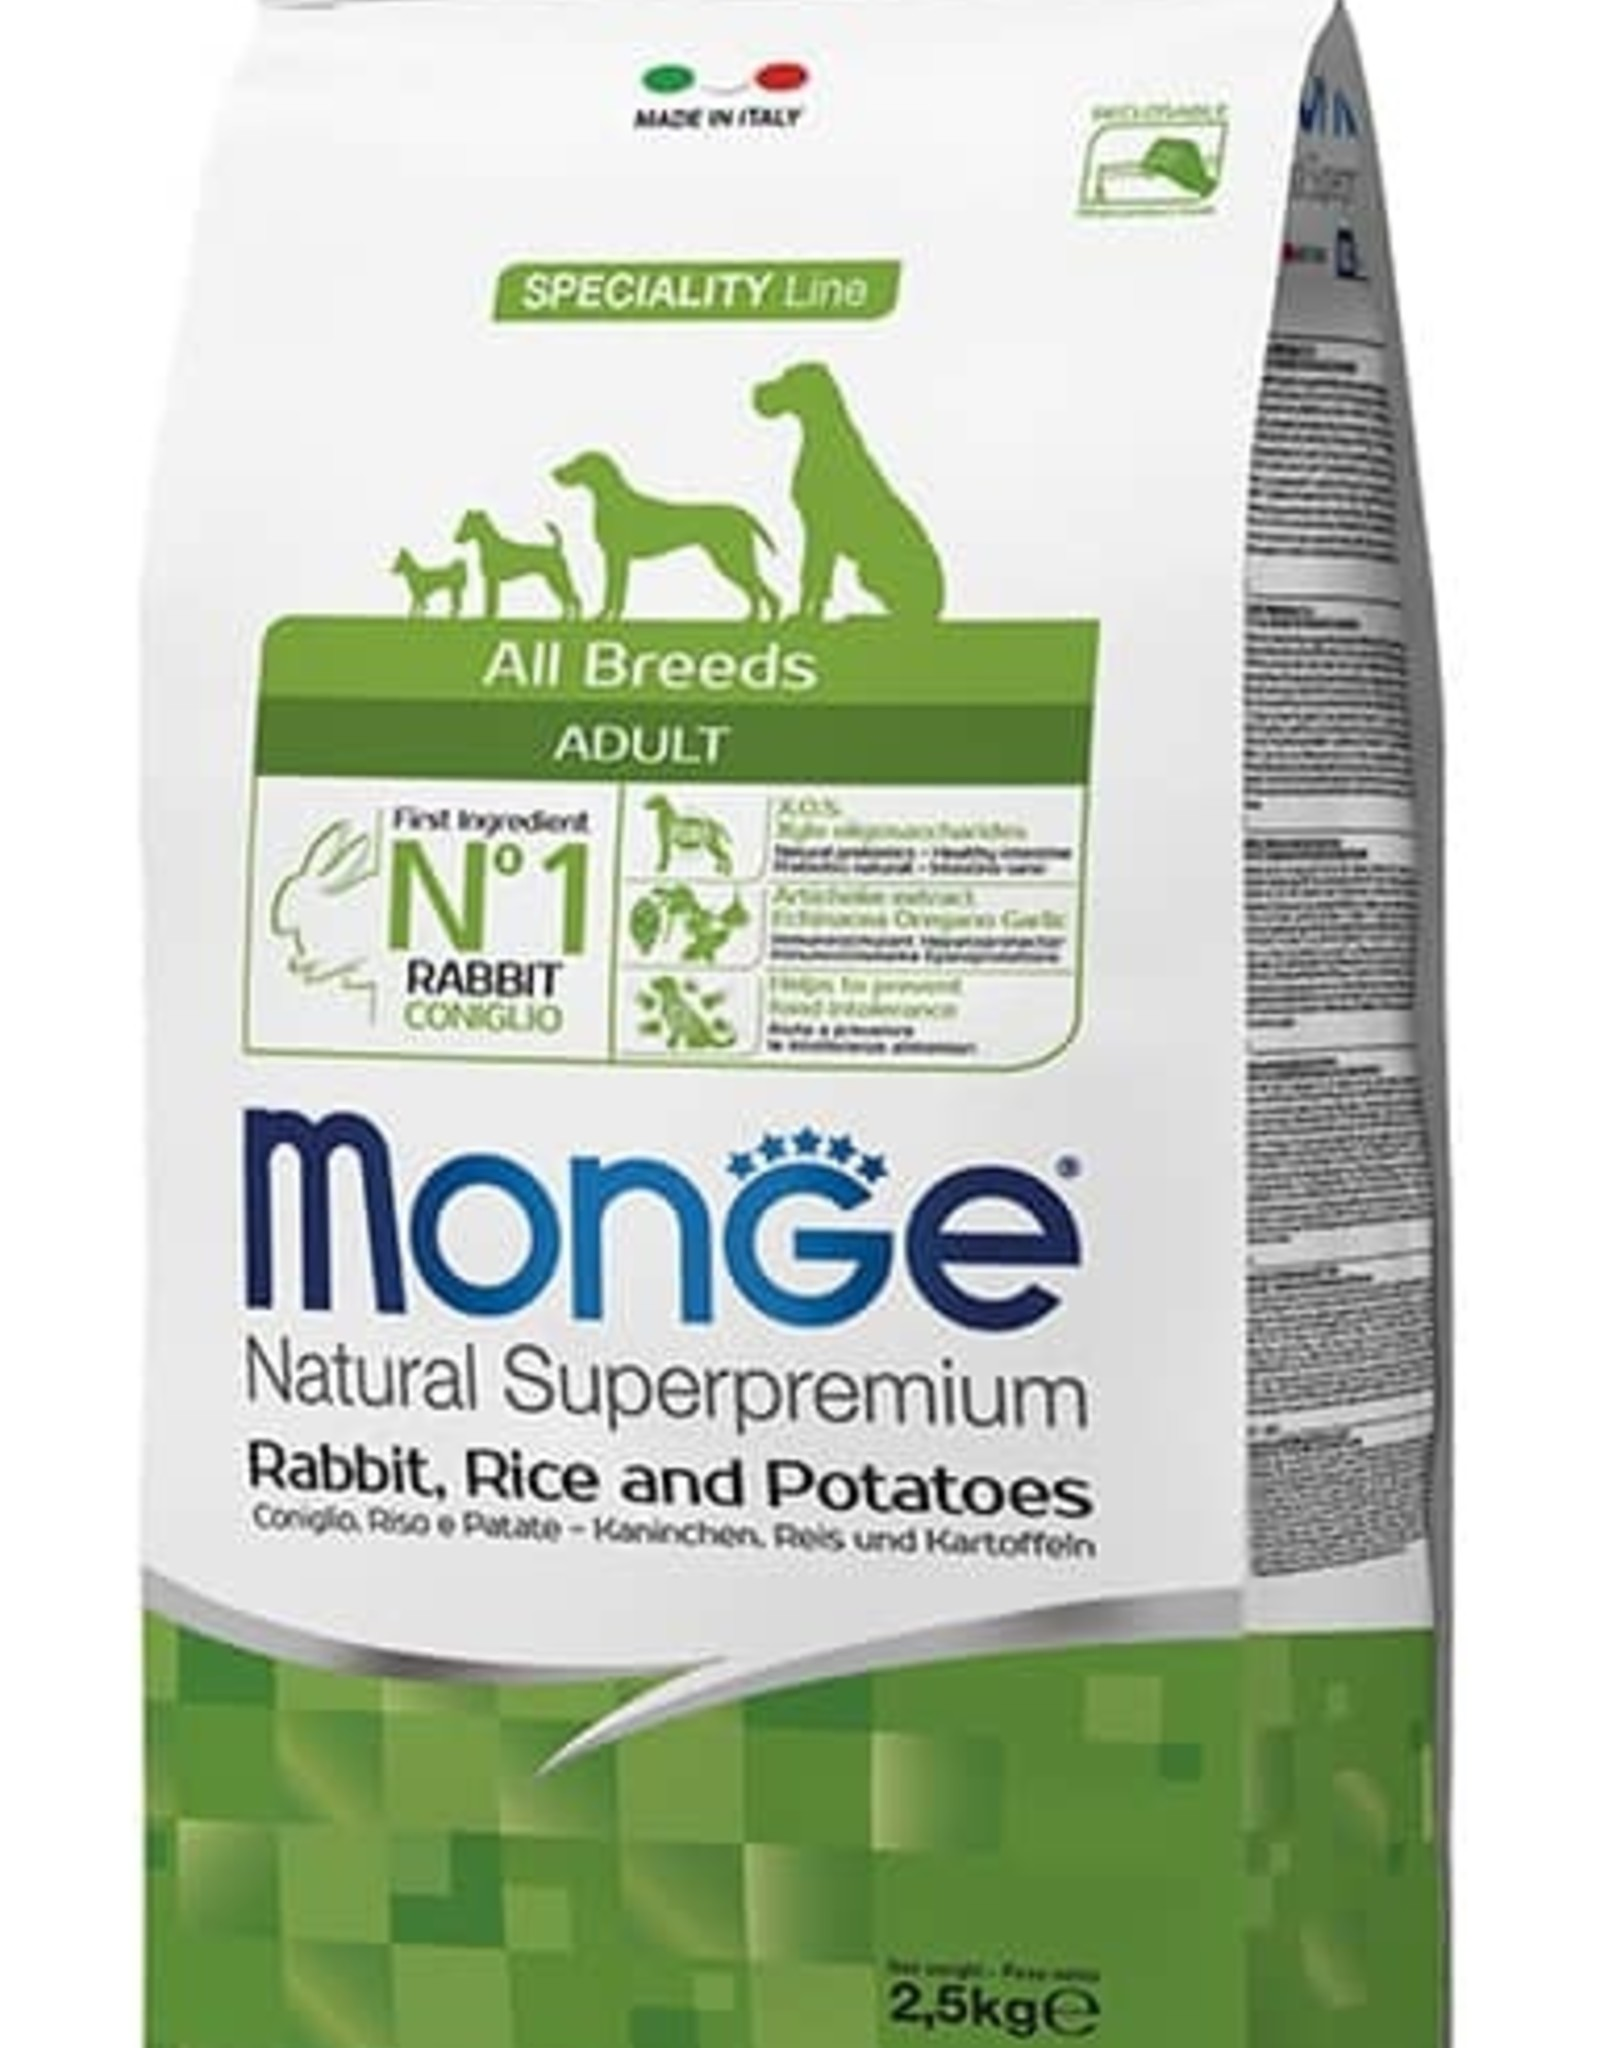 Monge Specialty line All Breeds Adult Rabbit, rice & potatoes